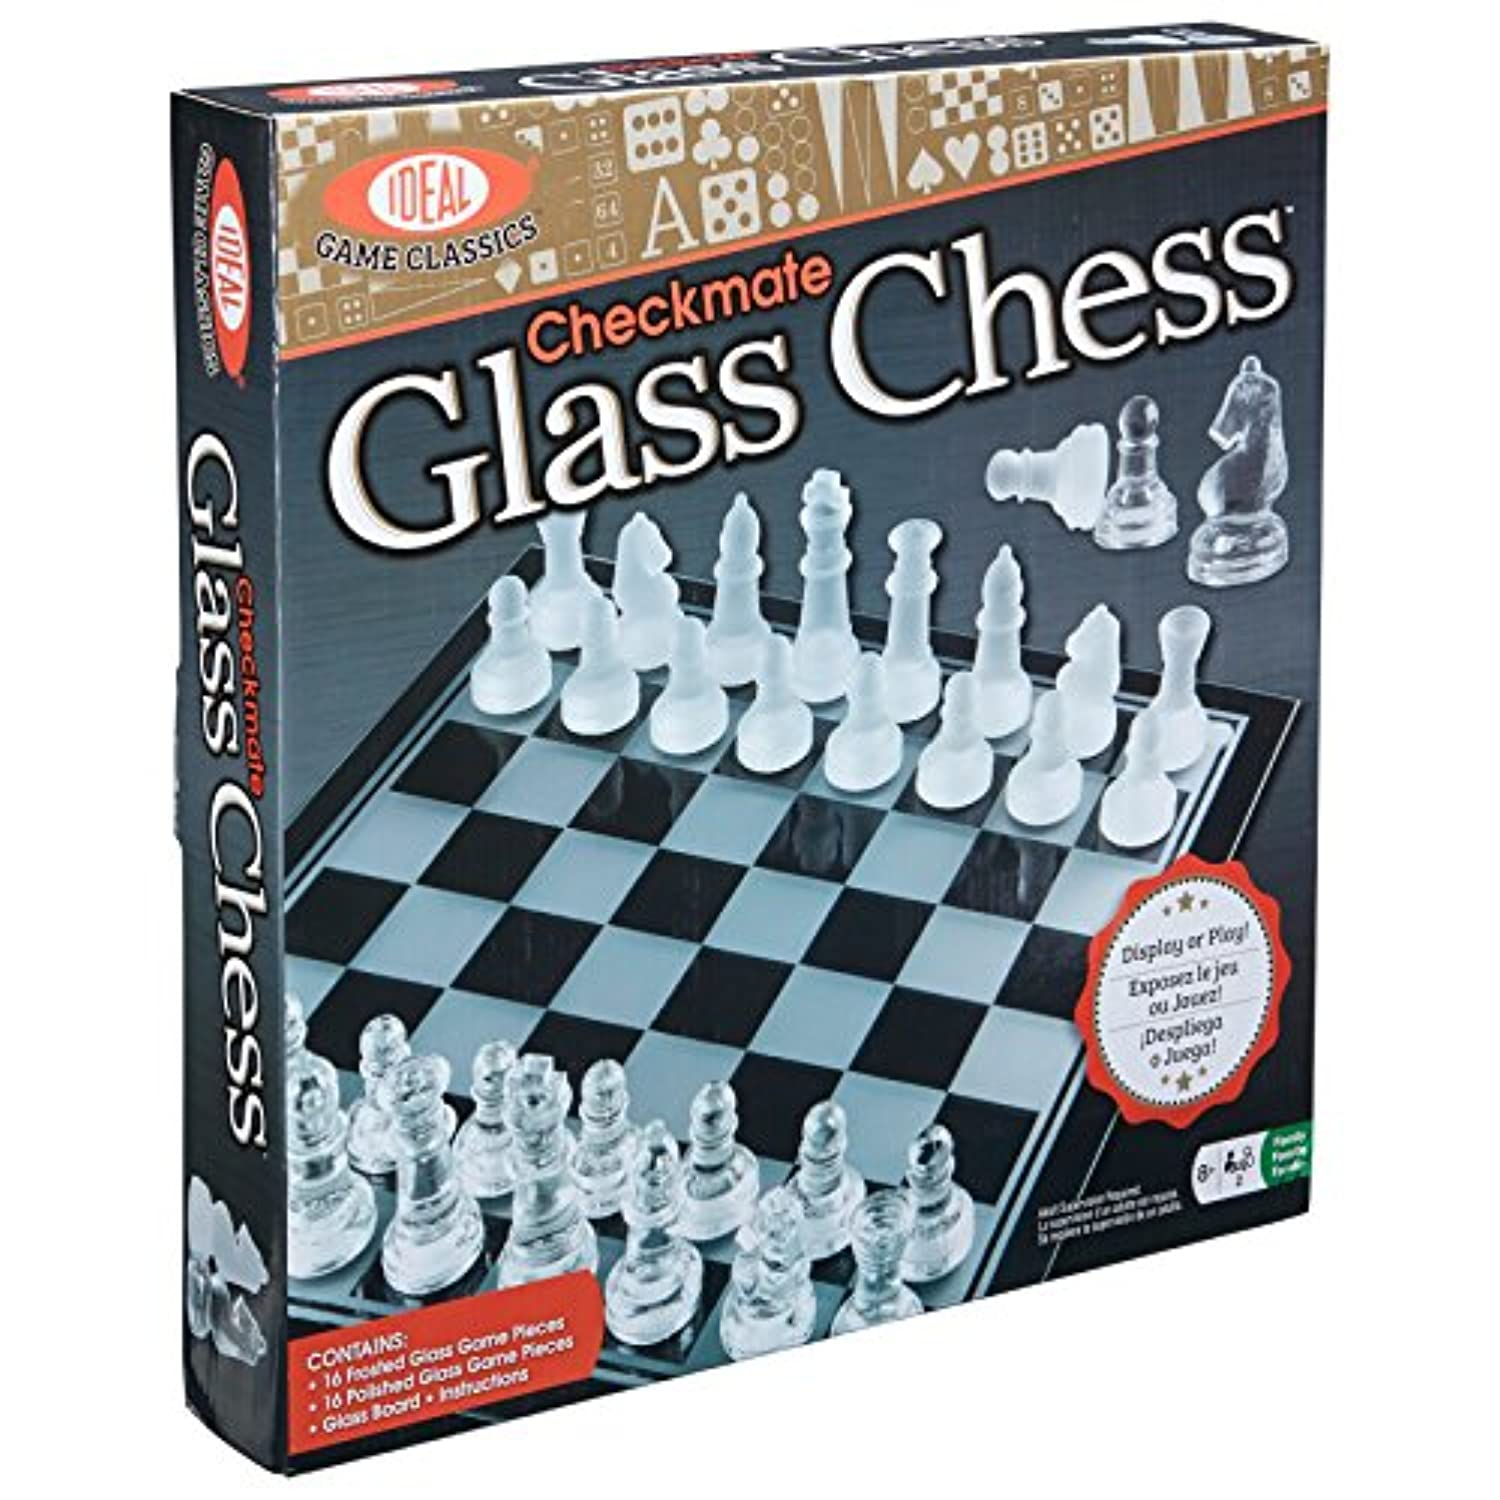 Checkmate Glass Chess